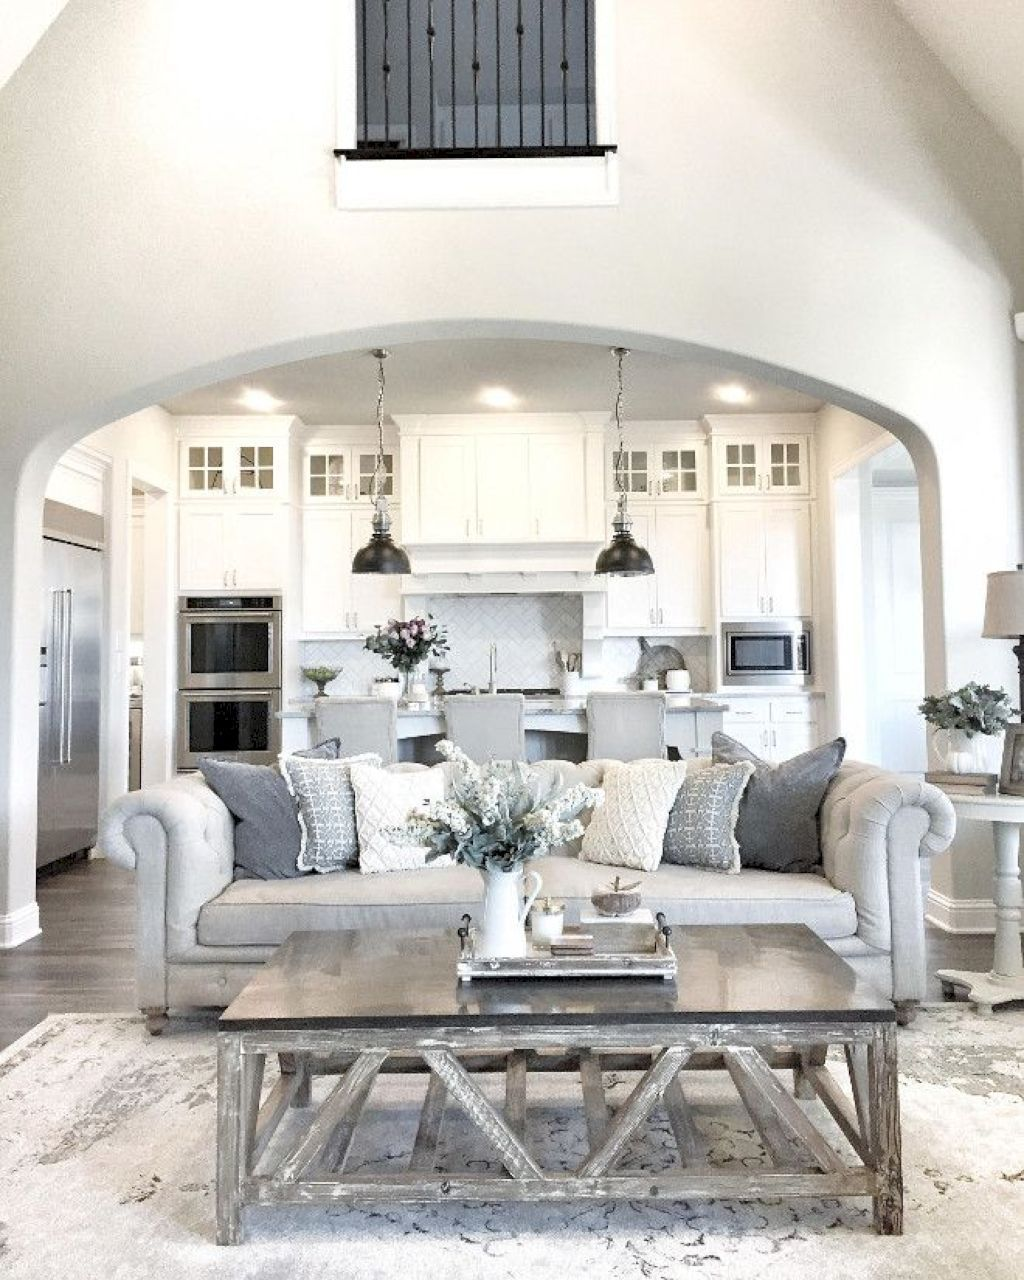 adorable 27 modern farmhouse living room decor and design ideas httpshomeylifecom27 modern farmhouse living room decor design ideas - Modern Farmhouse Living Room